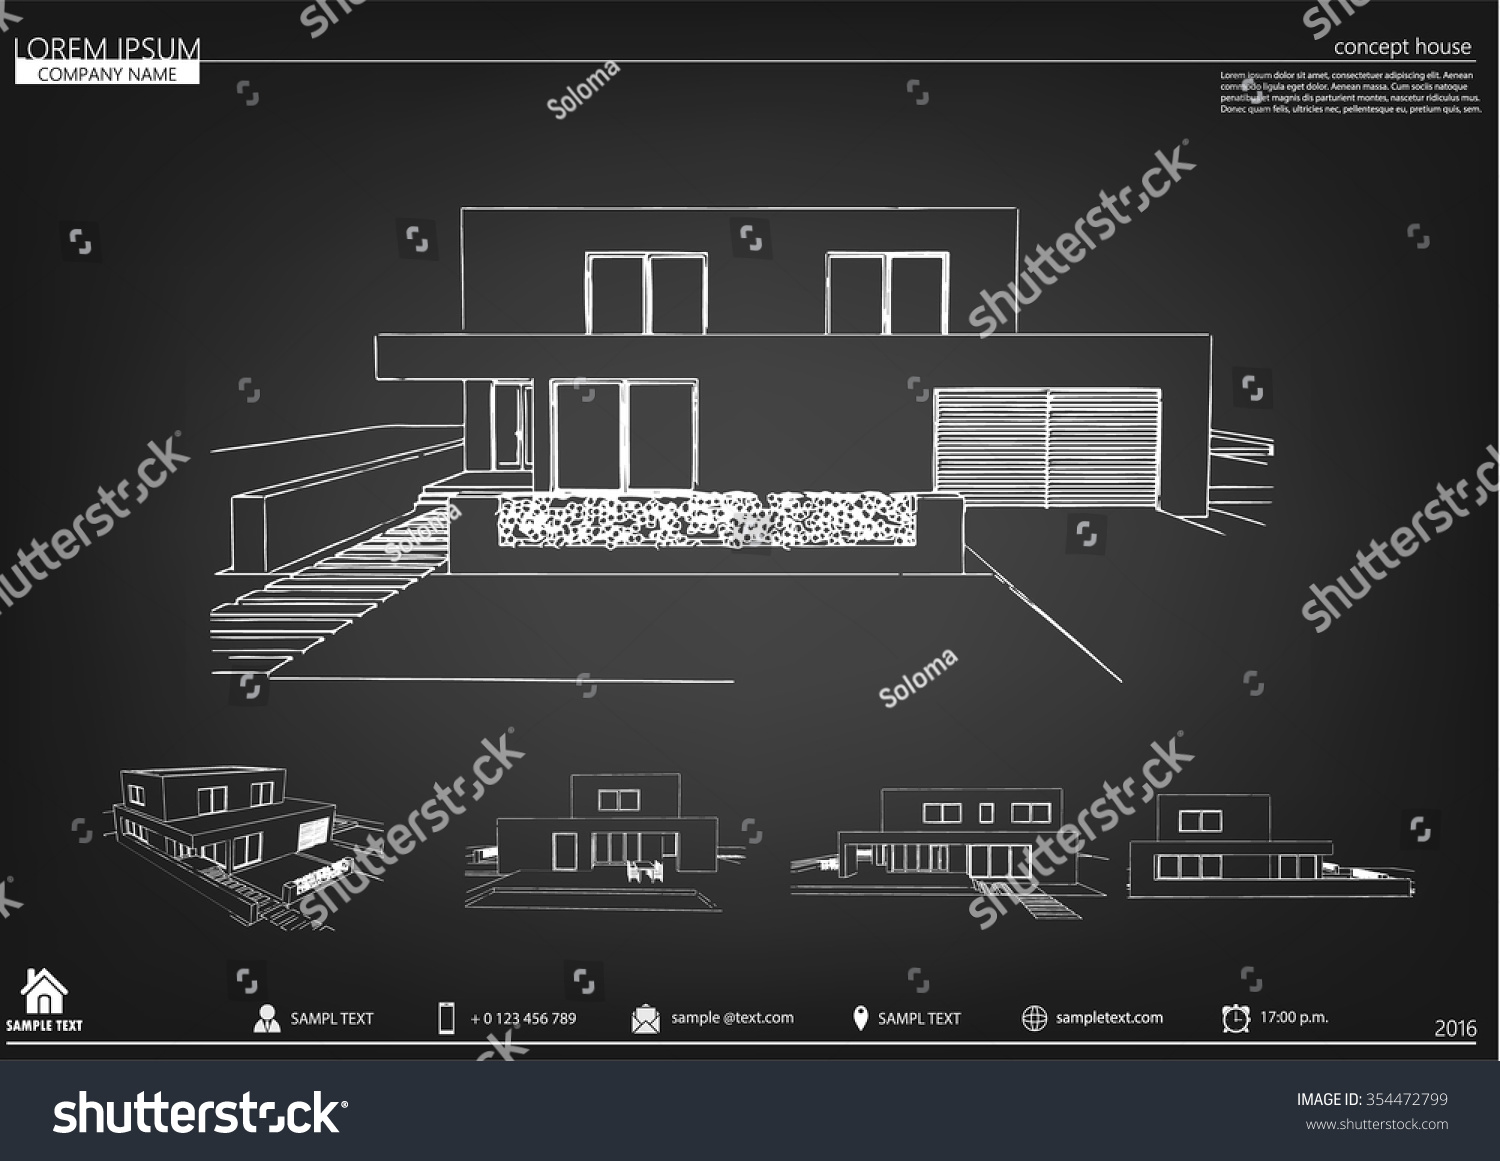 Wireframe blueprint drawing 3 d building vector stock vector wireframe blueprint drawing of 3d building vector architectural template background architectural drawing architectural malvernweather Image collections